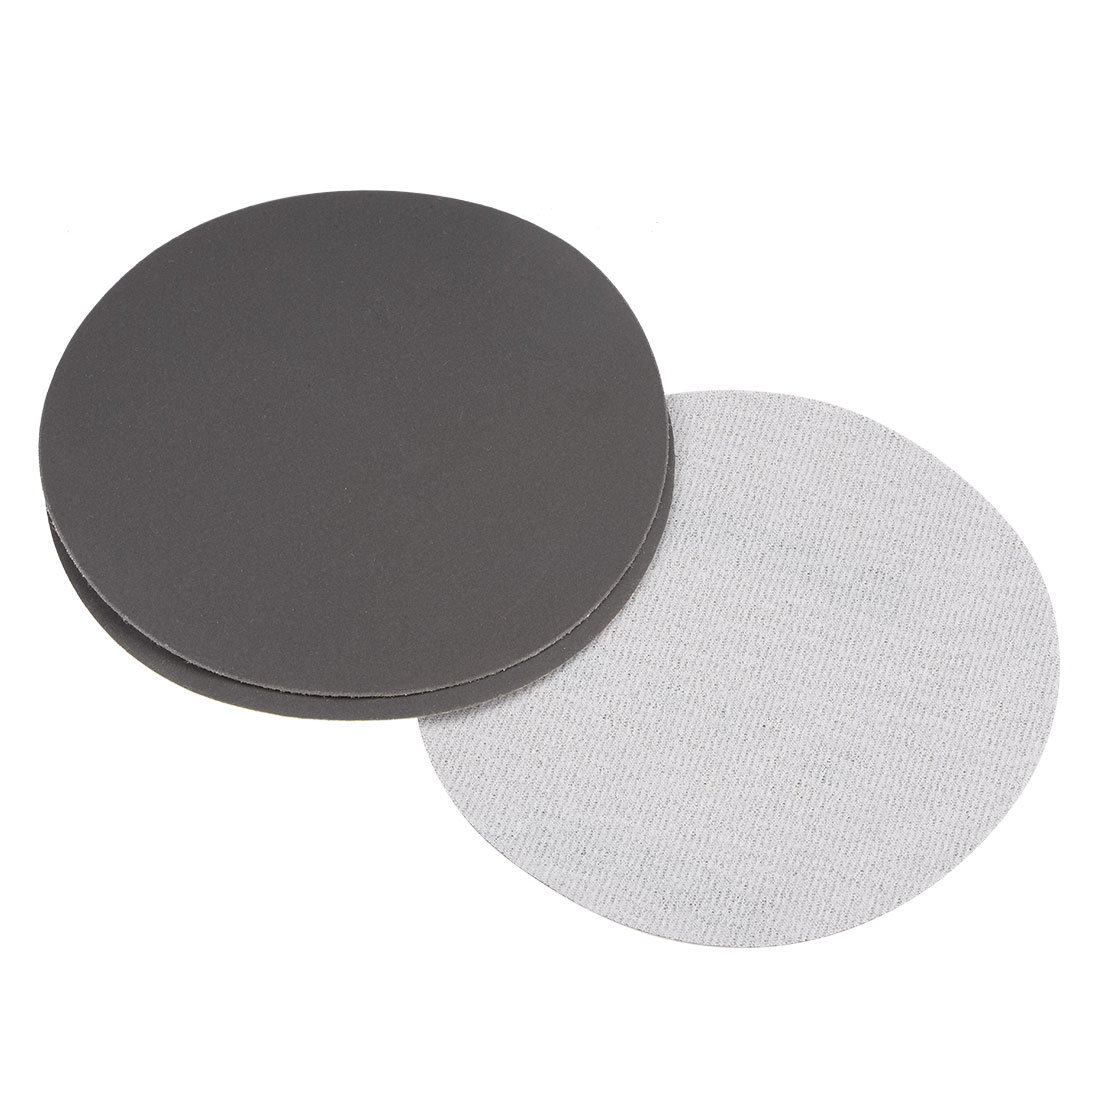 5 inch Wet Dry Discs 1000 Grit Hook and Loop Sanding Disc Silicon Carbide 3pcs